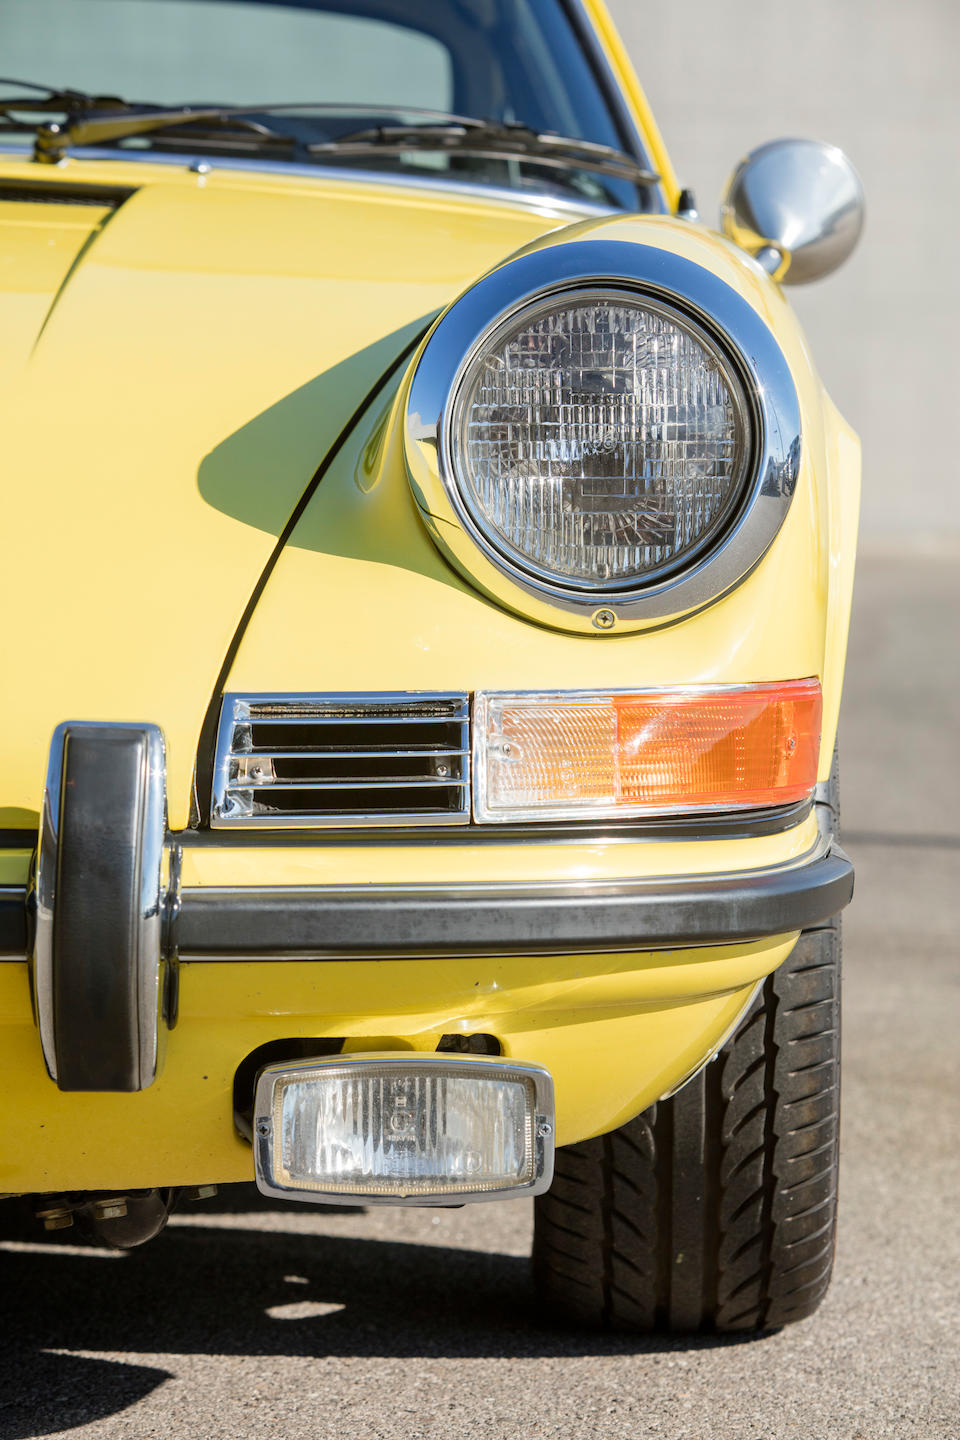 <b>1970 Porsche 911T 2.2 Coupe</b><br />Chassis no. 9110122810<br />Engine no. 6107815